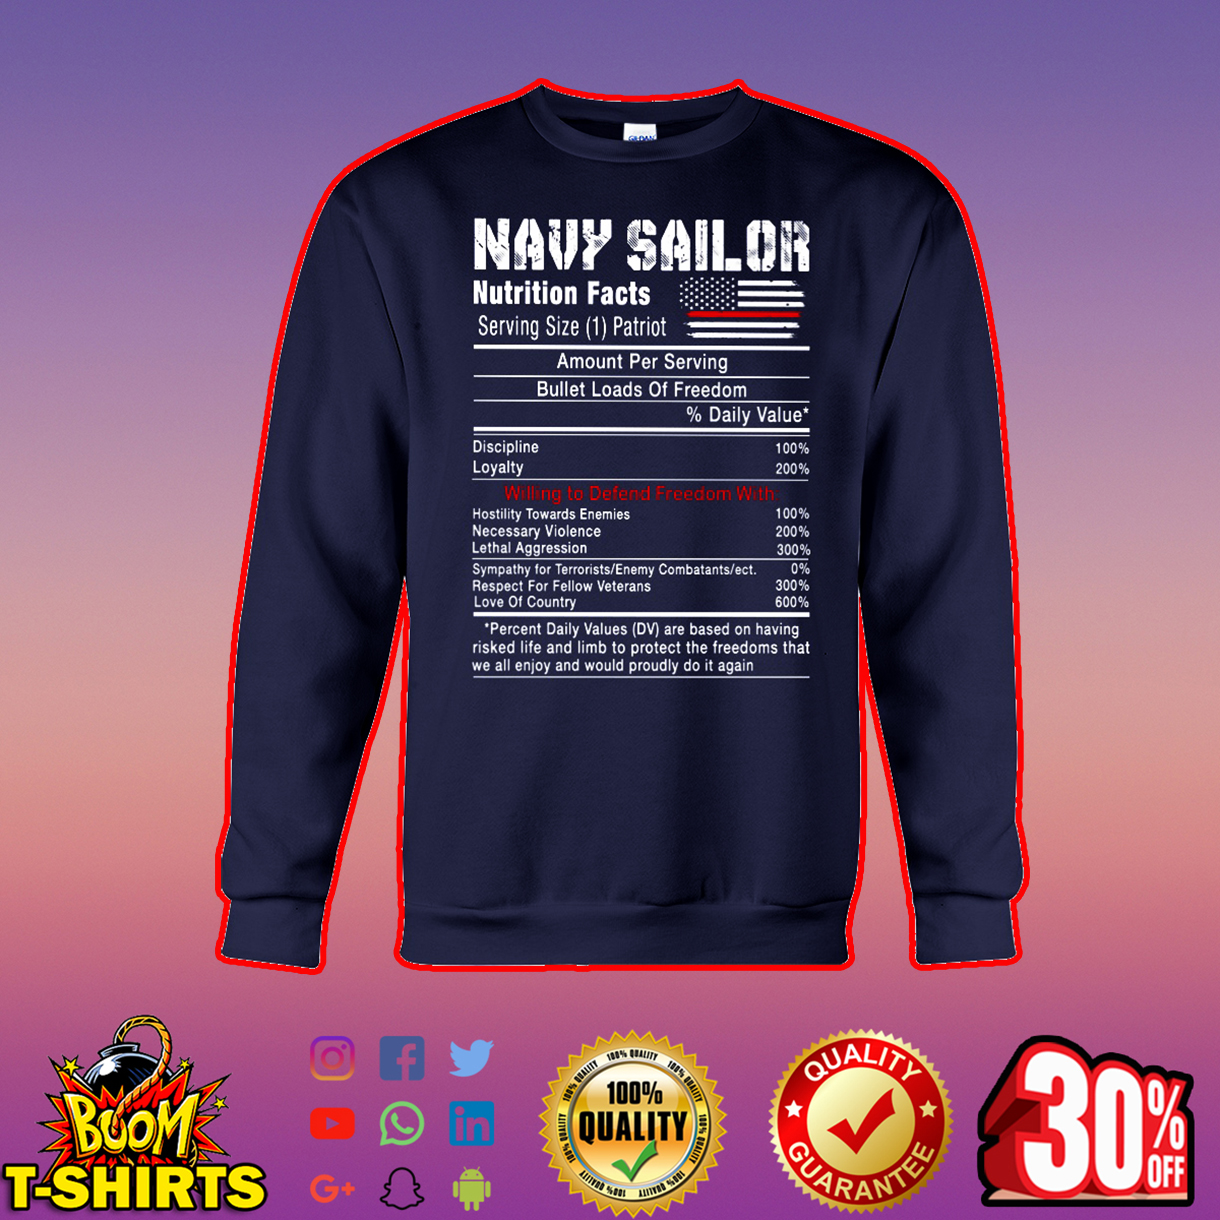 Navy sailor nutrition facts sweatshirt